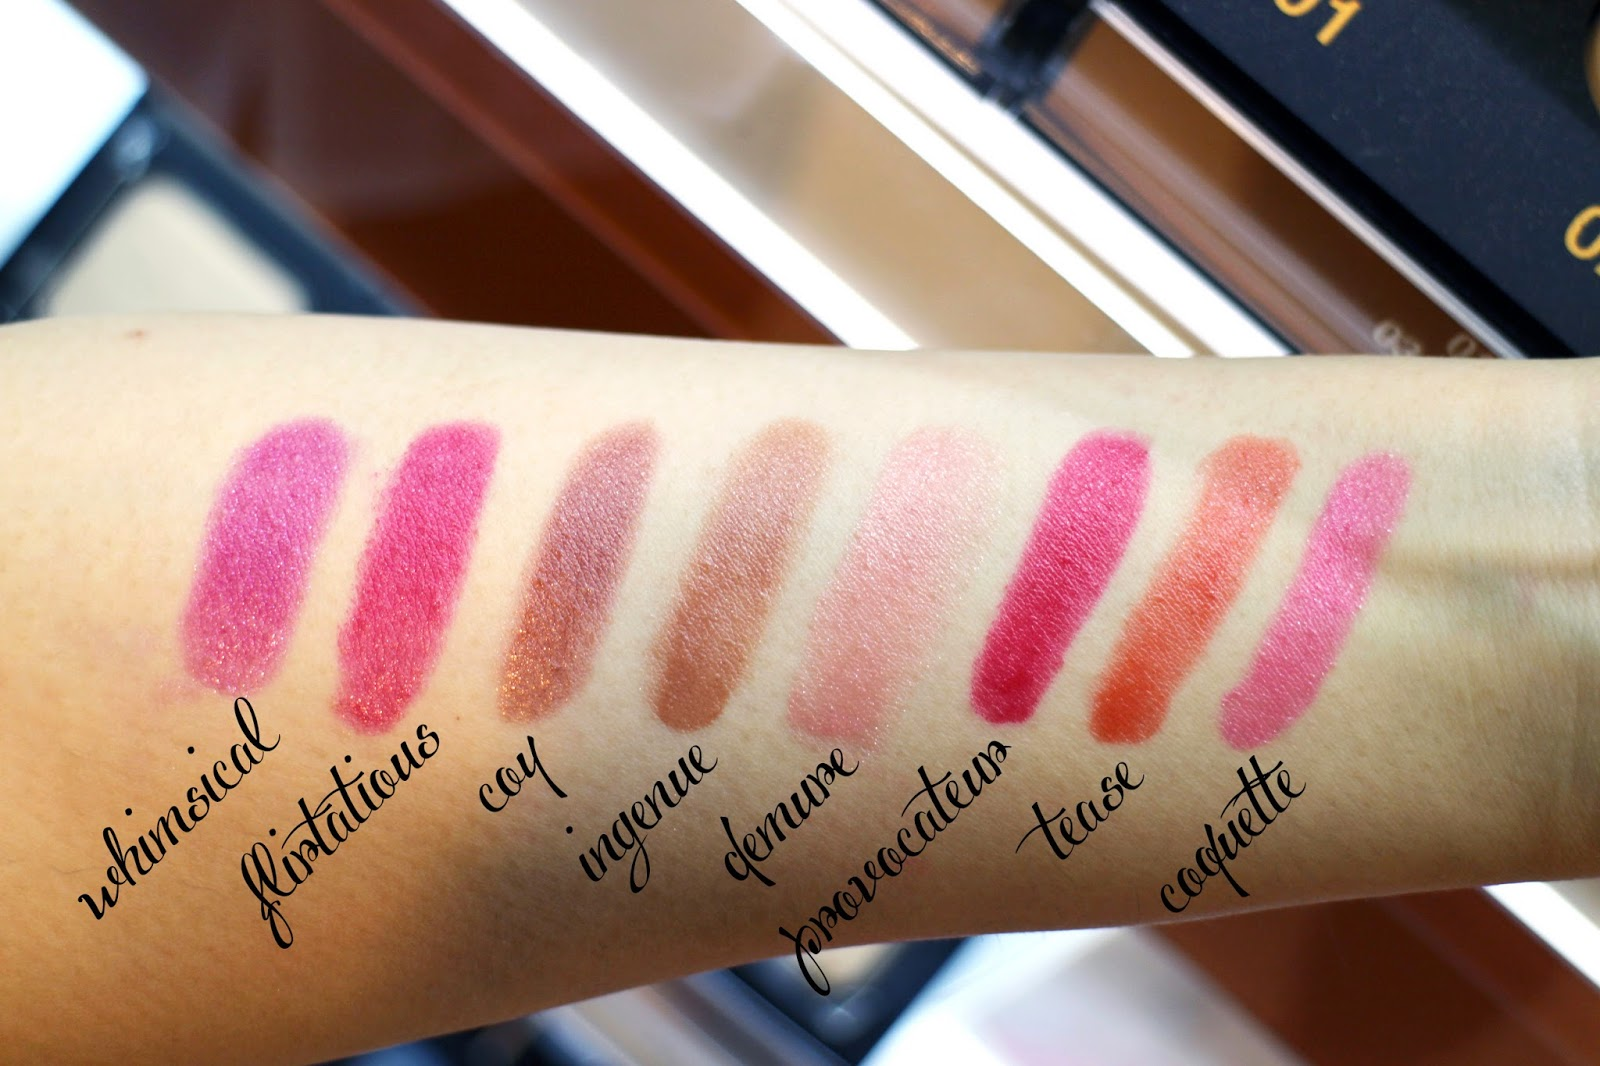 First Impressions Revlon Colorburst Lacquer Matte Balms Collorbust Balm Absolutely Amazing Selection Of Colours Ranging From Corals To Nudes The Magentas Keeping In Mind That It Is A High Shine Lip Product